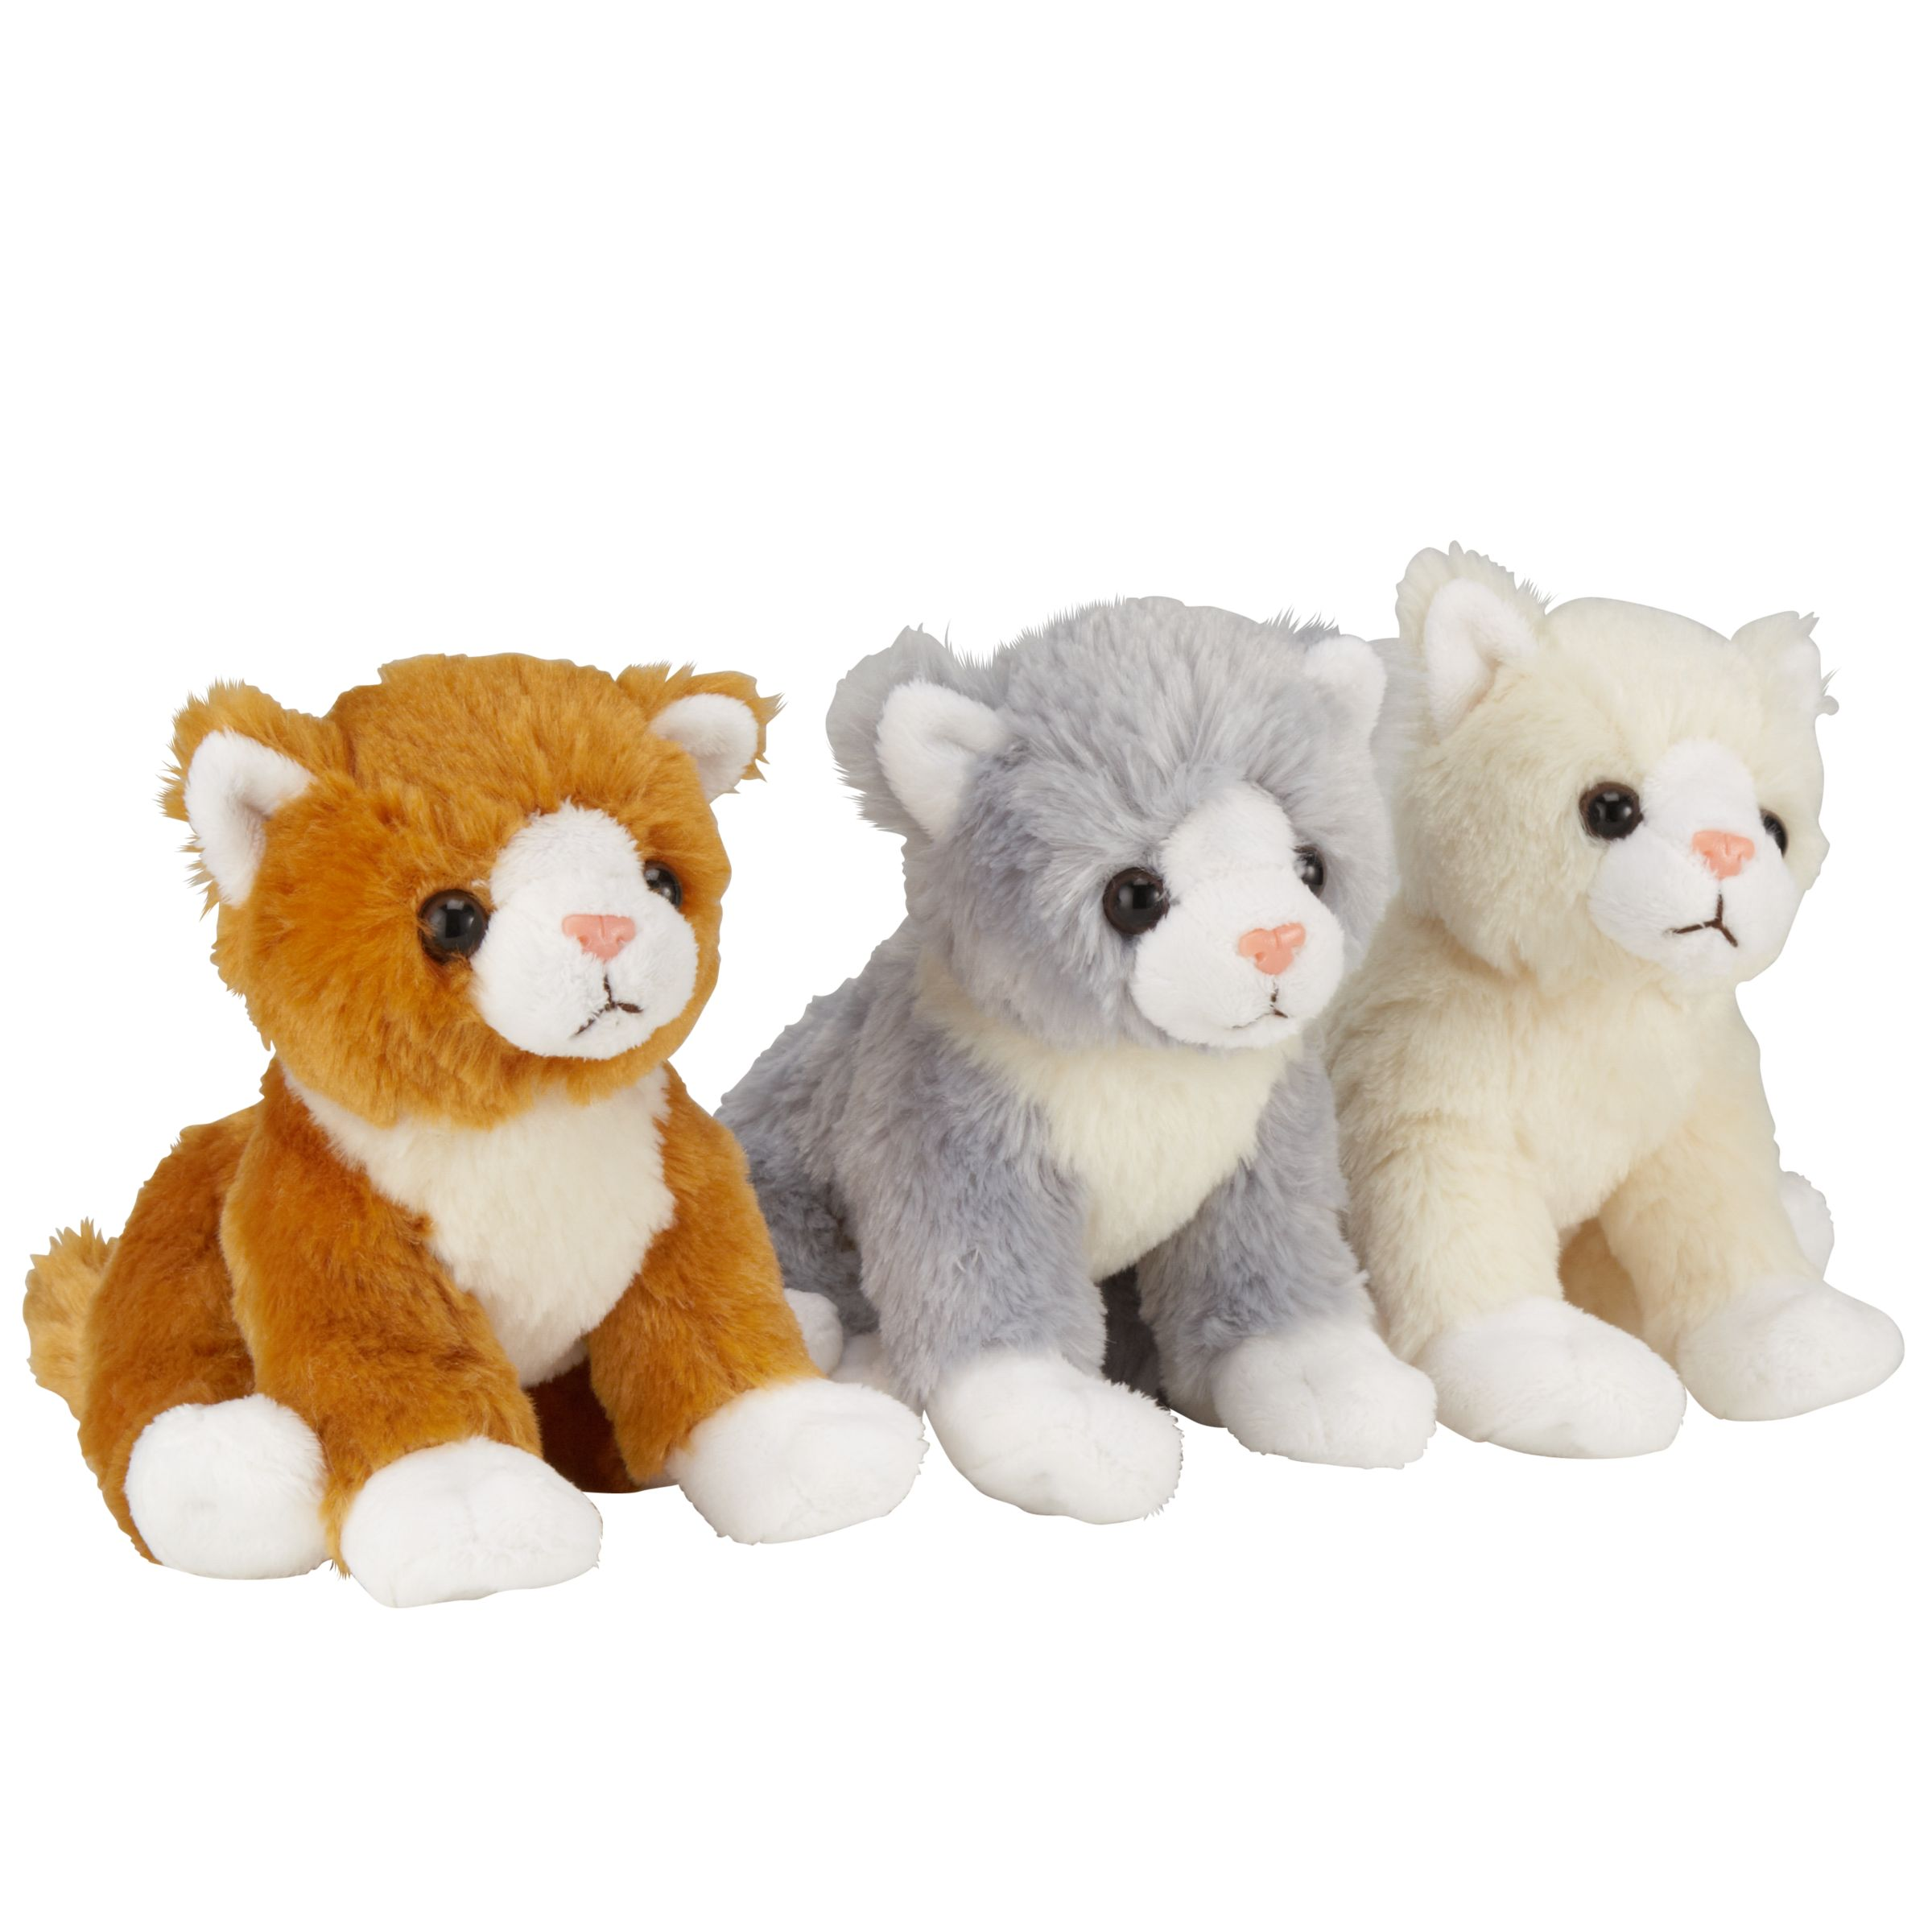 John Lewis Sitting Cat Plush Toy, Assorted